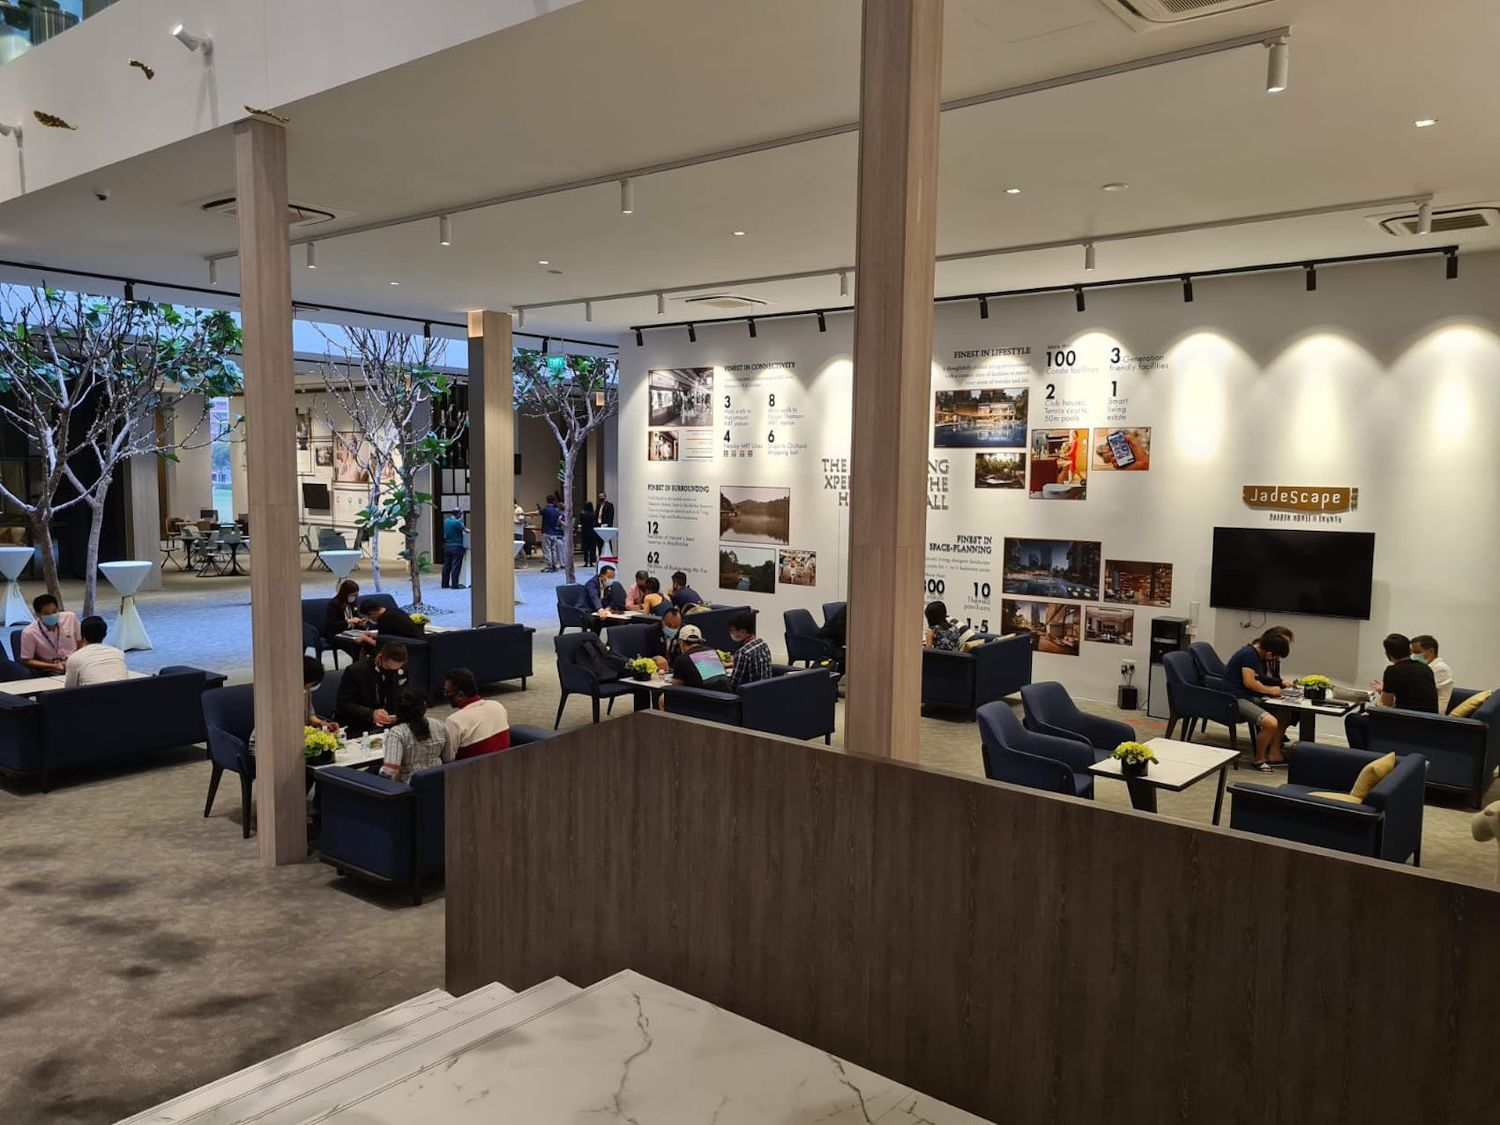 EDGEPROP SINGAPORE - JadeScape sales gallery which saw 130 viewing appointments and 11 units sold over the past three days (Photo: Qingjian Realty)